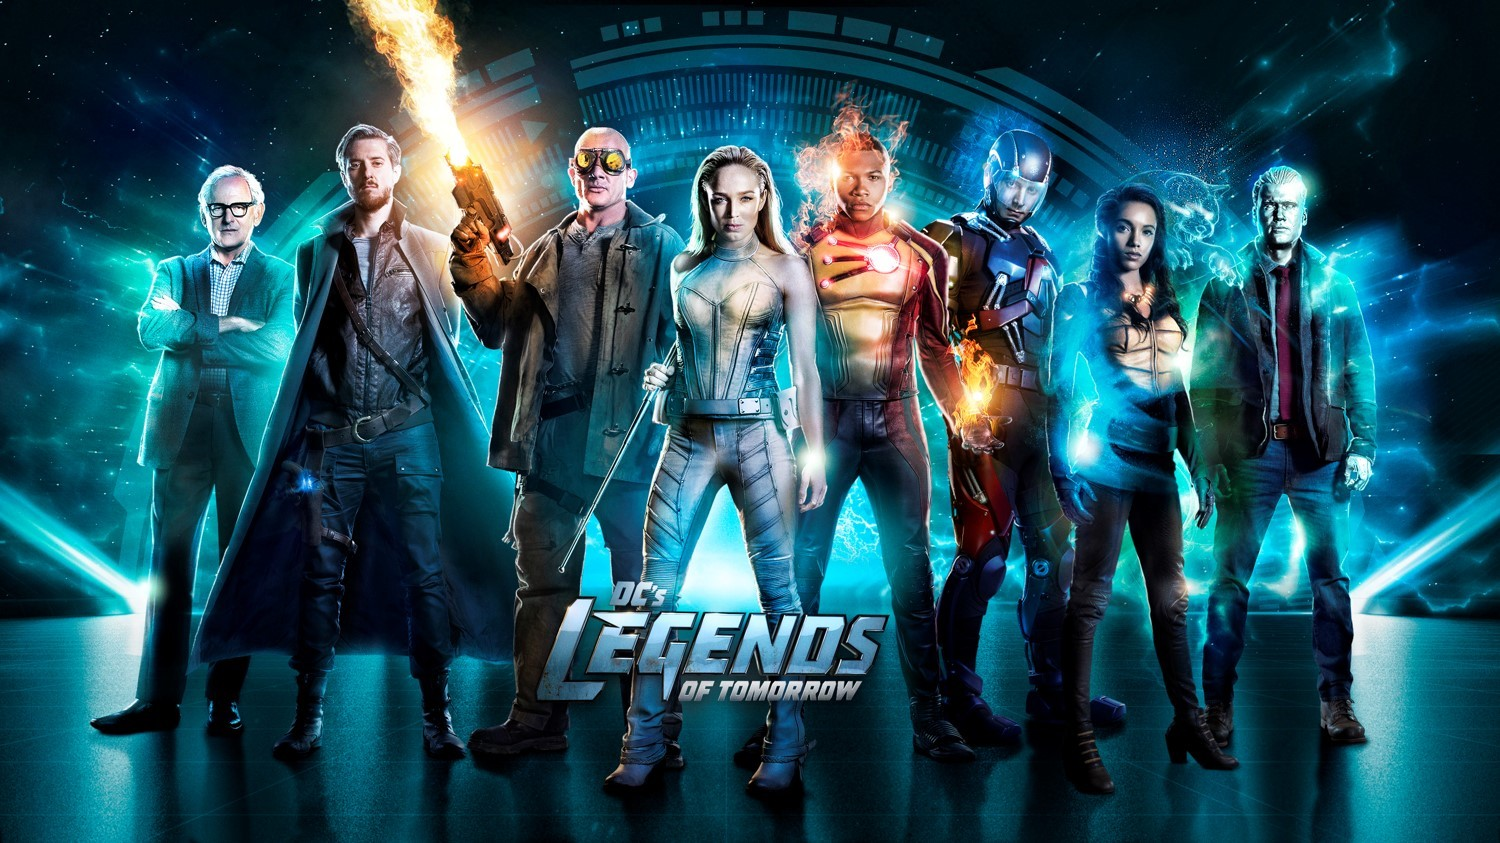 Legends Of Tomorrow Season 3, HD Tv Shows, 4k Wallpapers